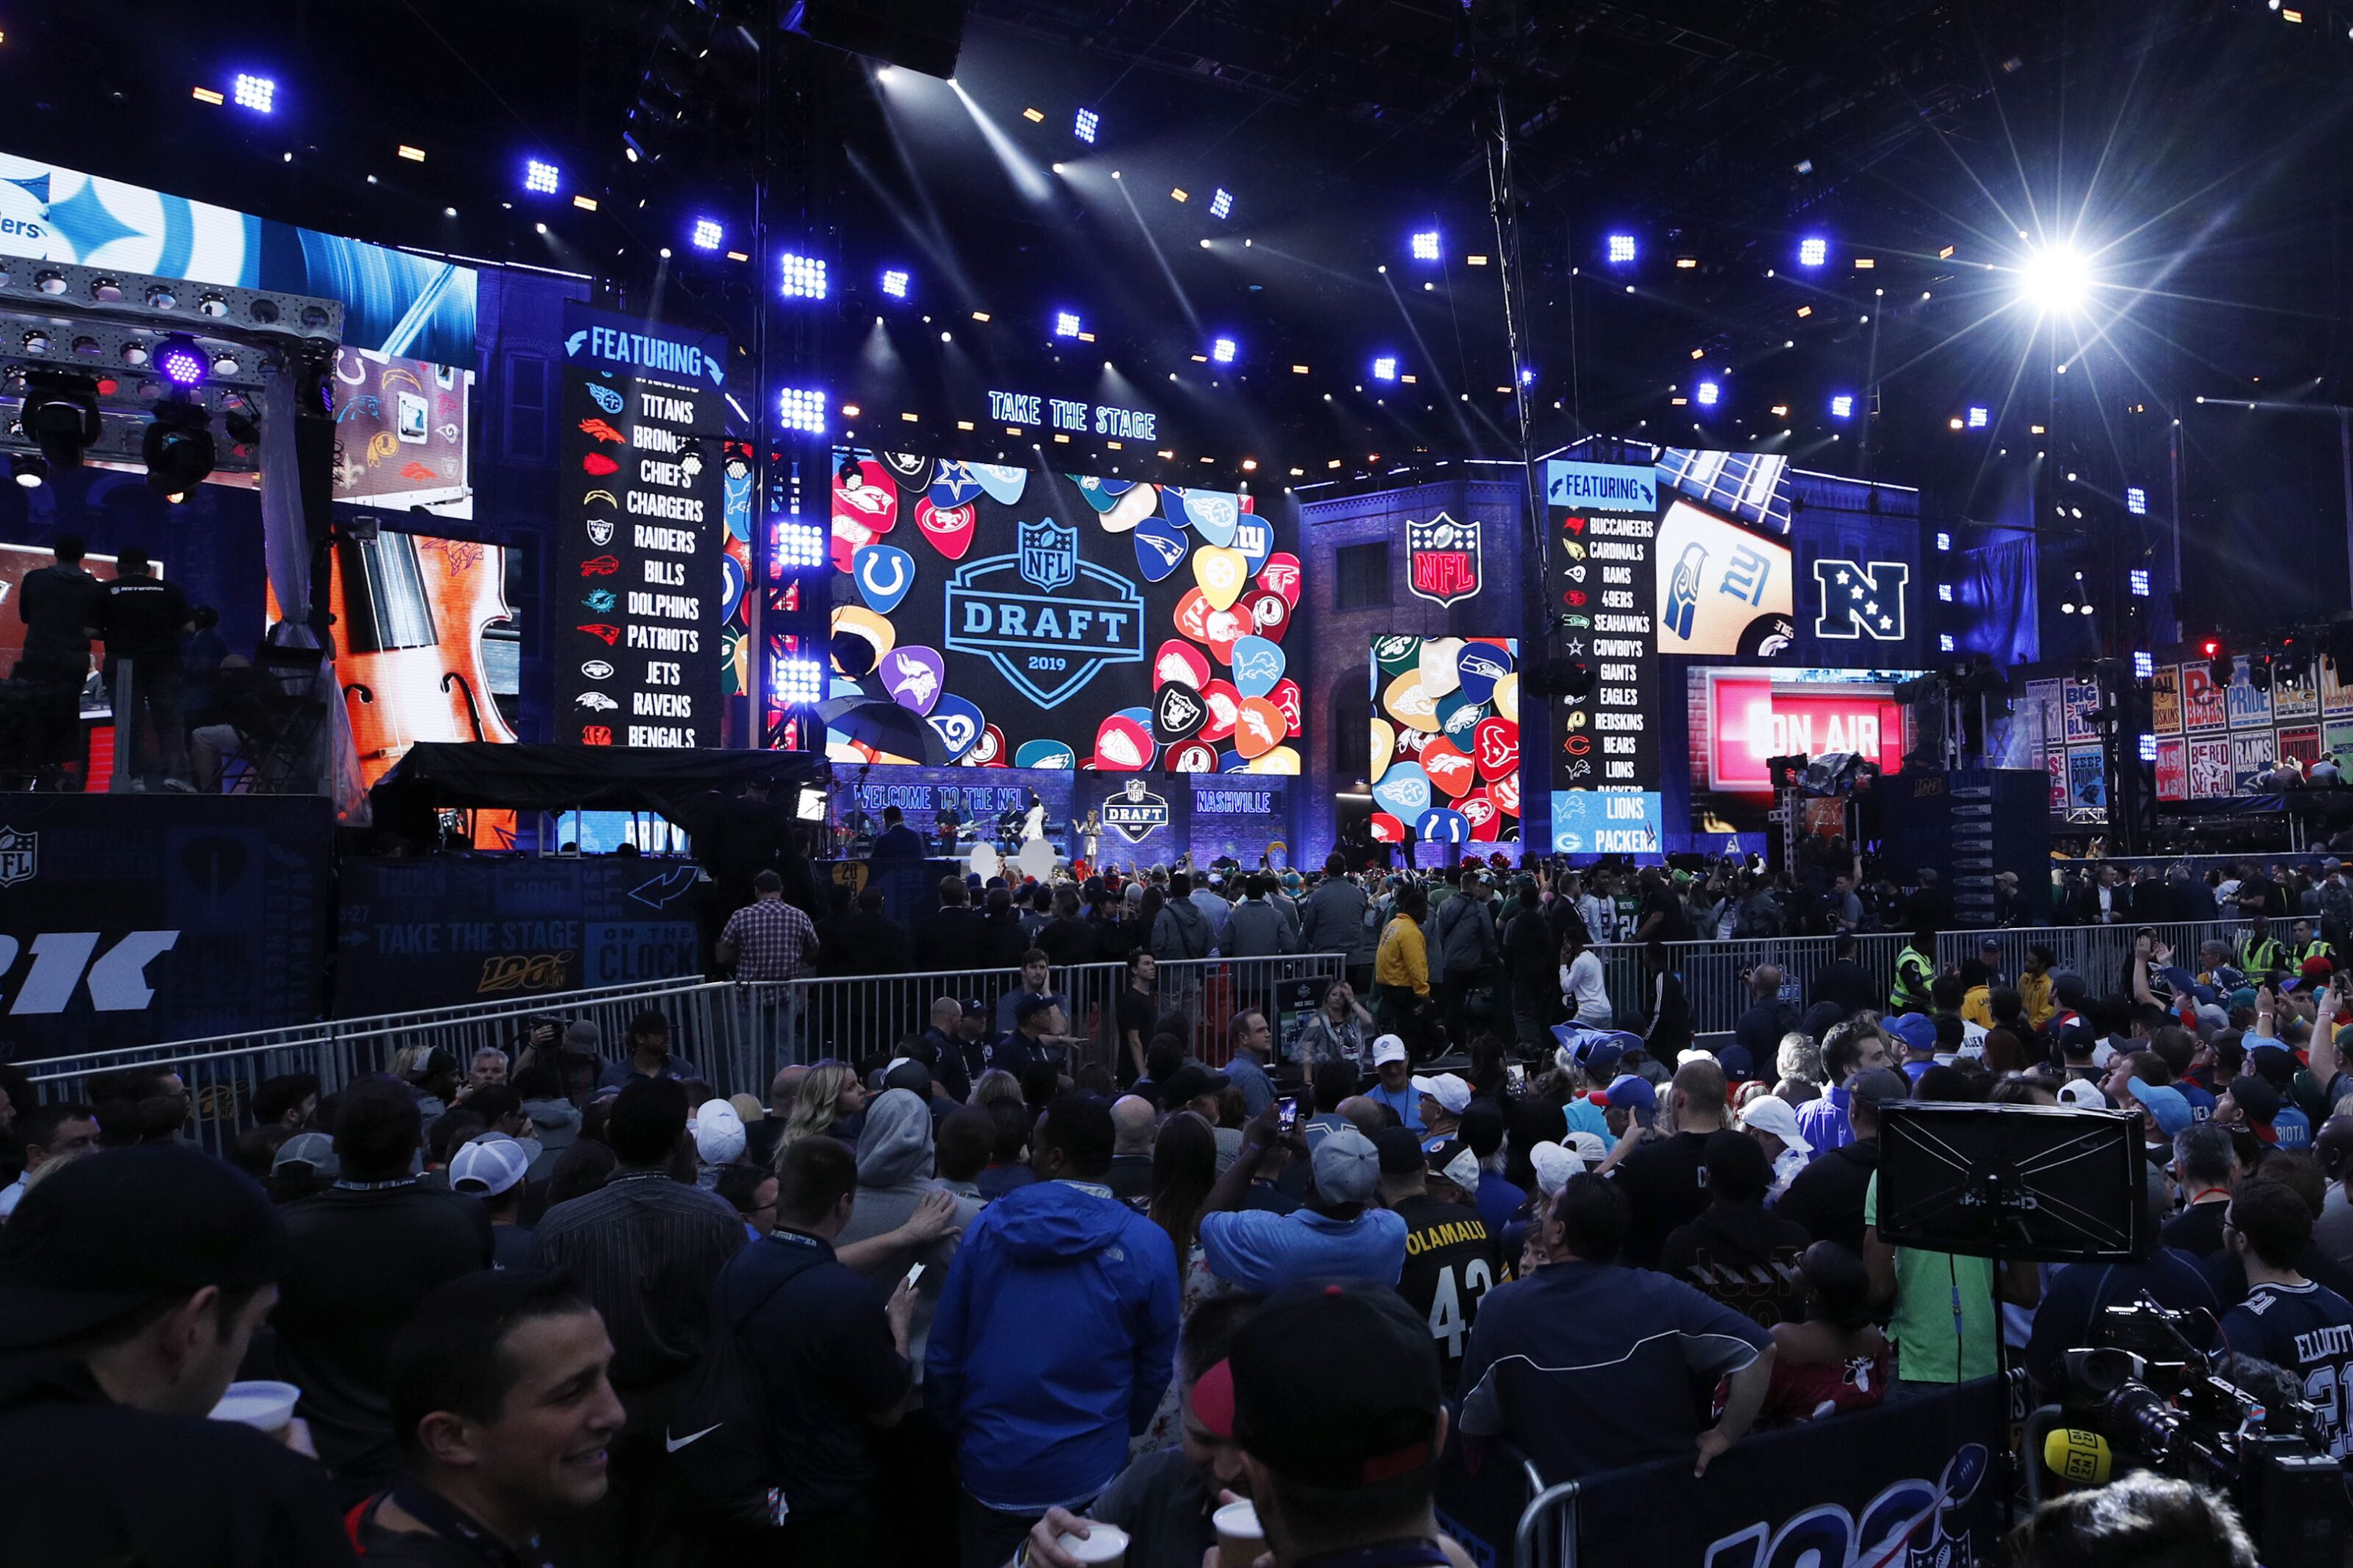 Houston Texans: An early look ahead at the 2020 NFL Draft